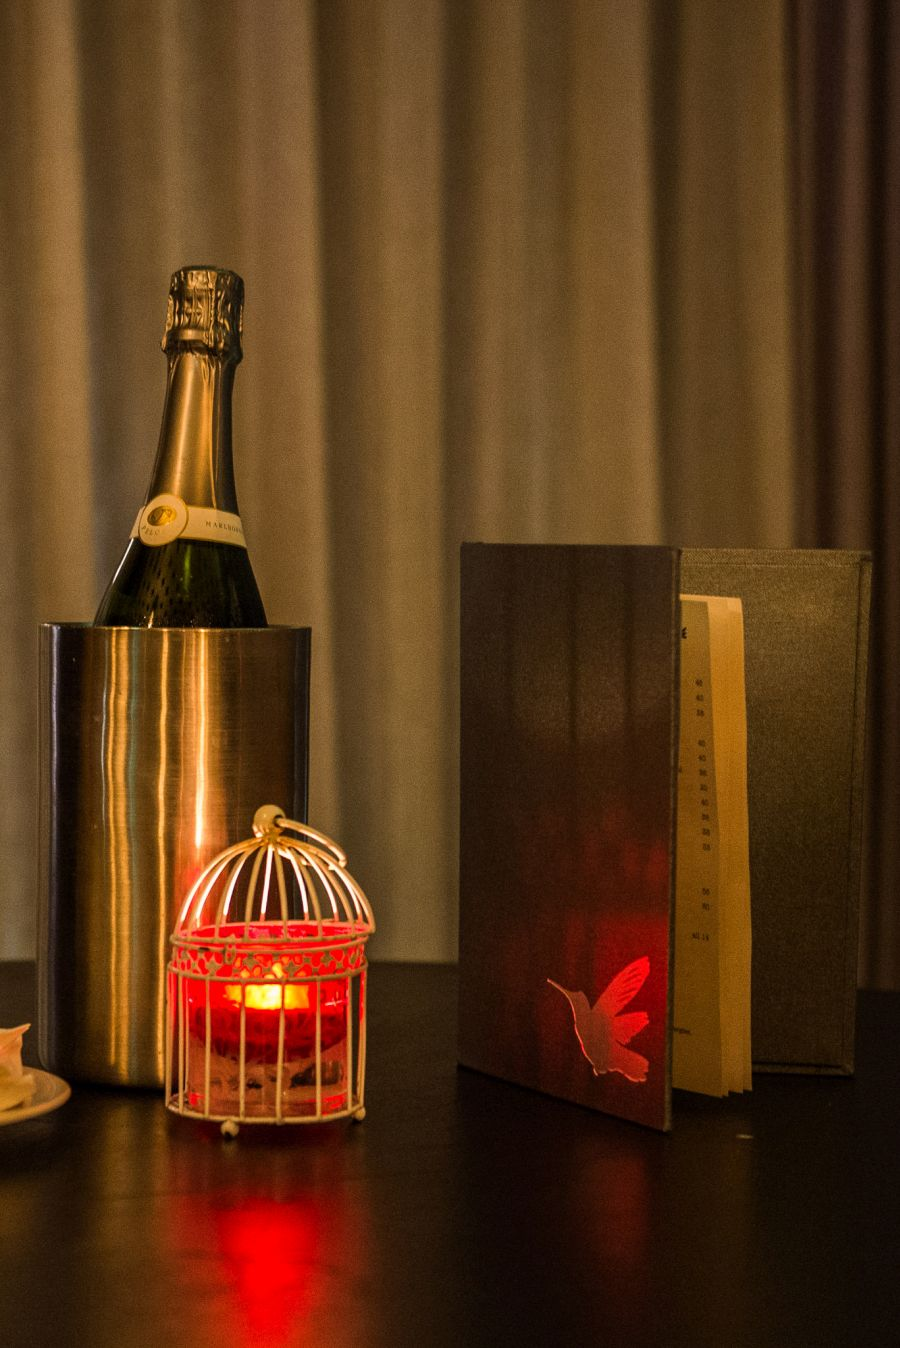 Champagne, lamp and menu - The Aviary